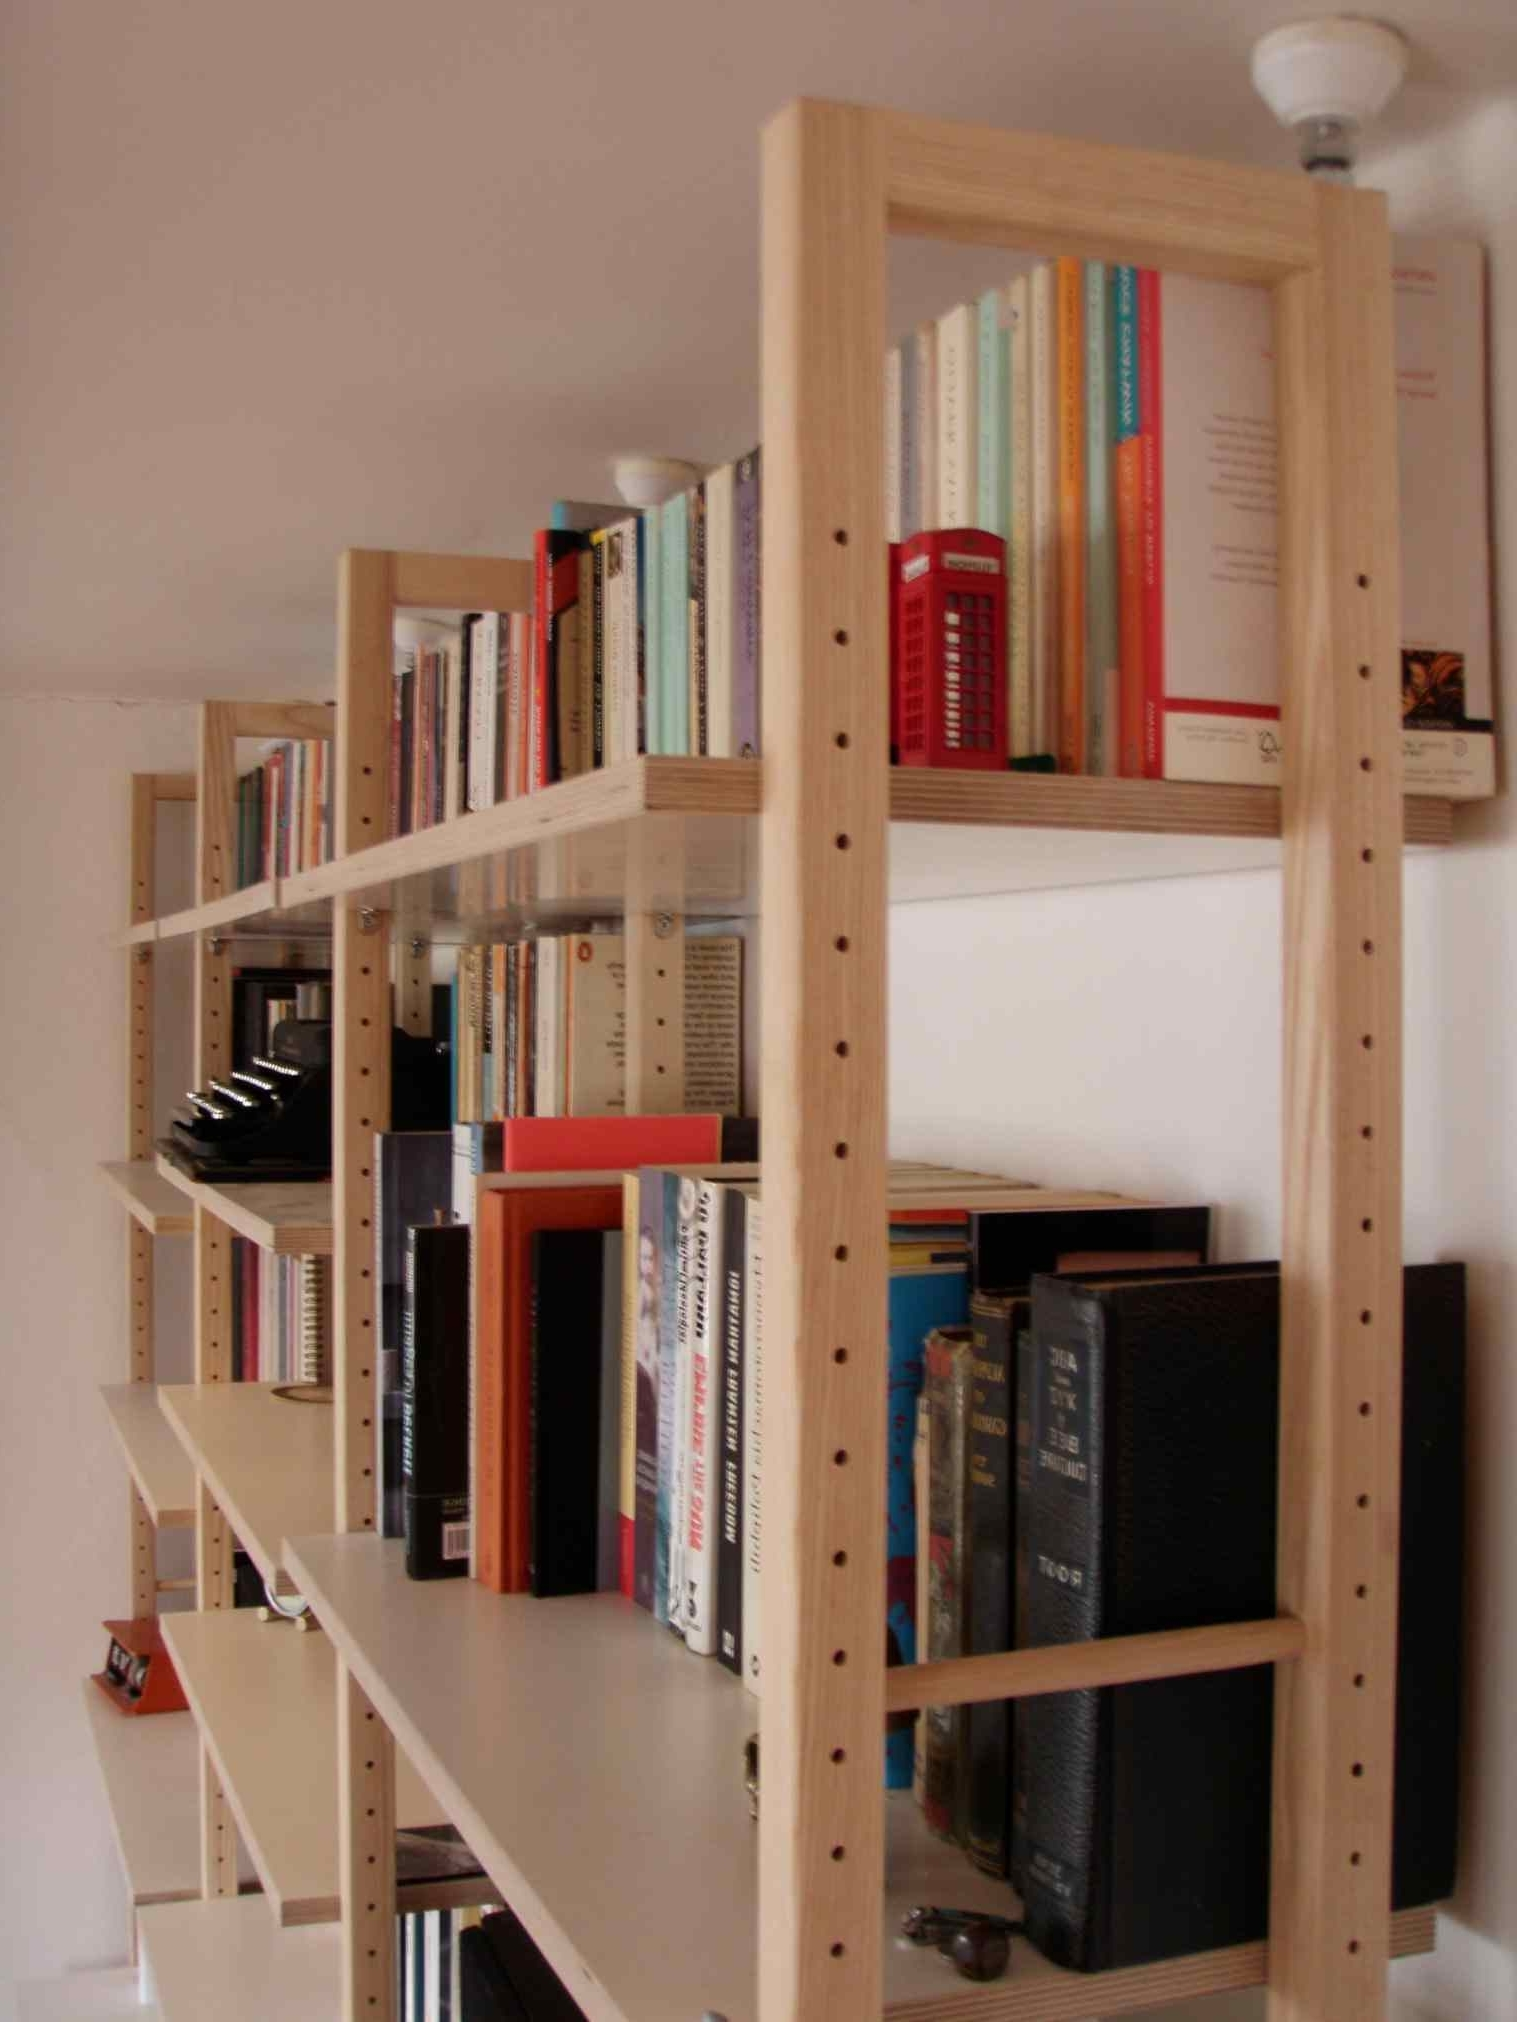 Systems Wall Fixed Shelves And Units Astounding White Wooden Pertaining To Famous Book Shelving Systems (View 13 of 15)